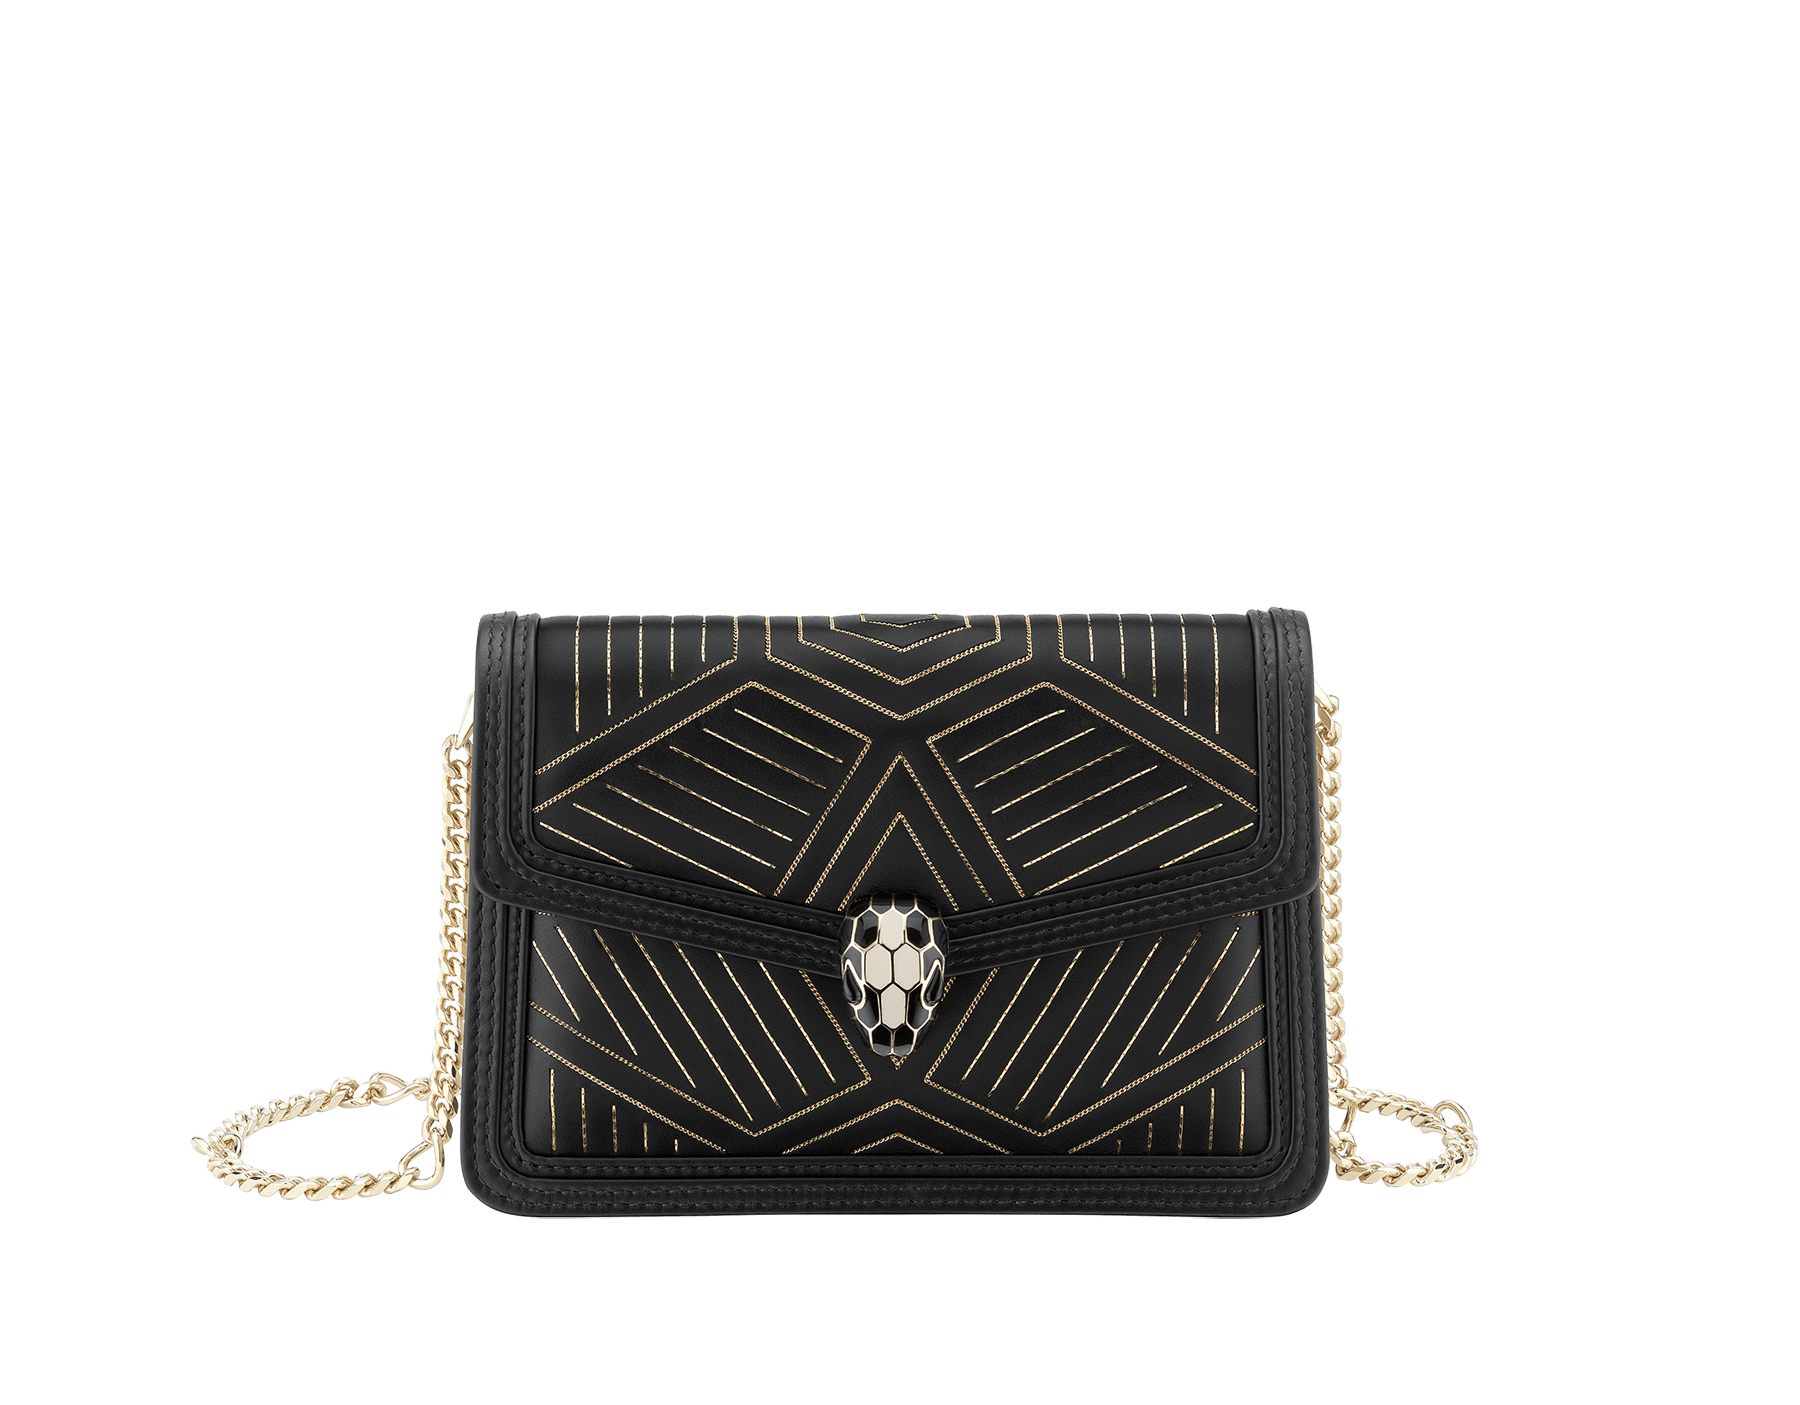 """Serpenti Diamond Blast"" shoulder bag in white agate calf leather, featuring a Whispy Chain motif in light gold finishing. Iconic snakehead closure in light gold-plated brass enriched with black and white agate enamel and black onyx eyes. 987-WC image 1"